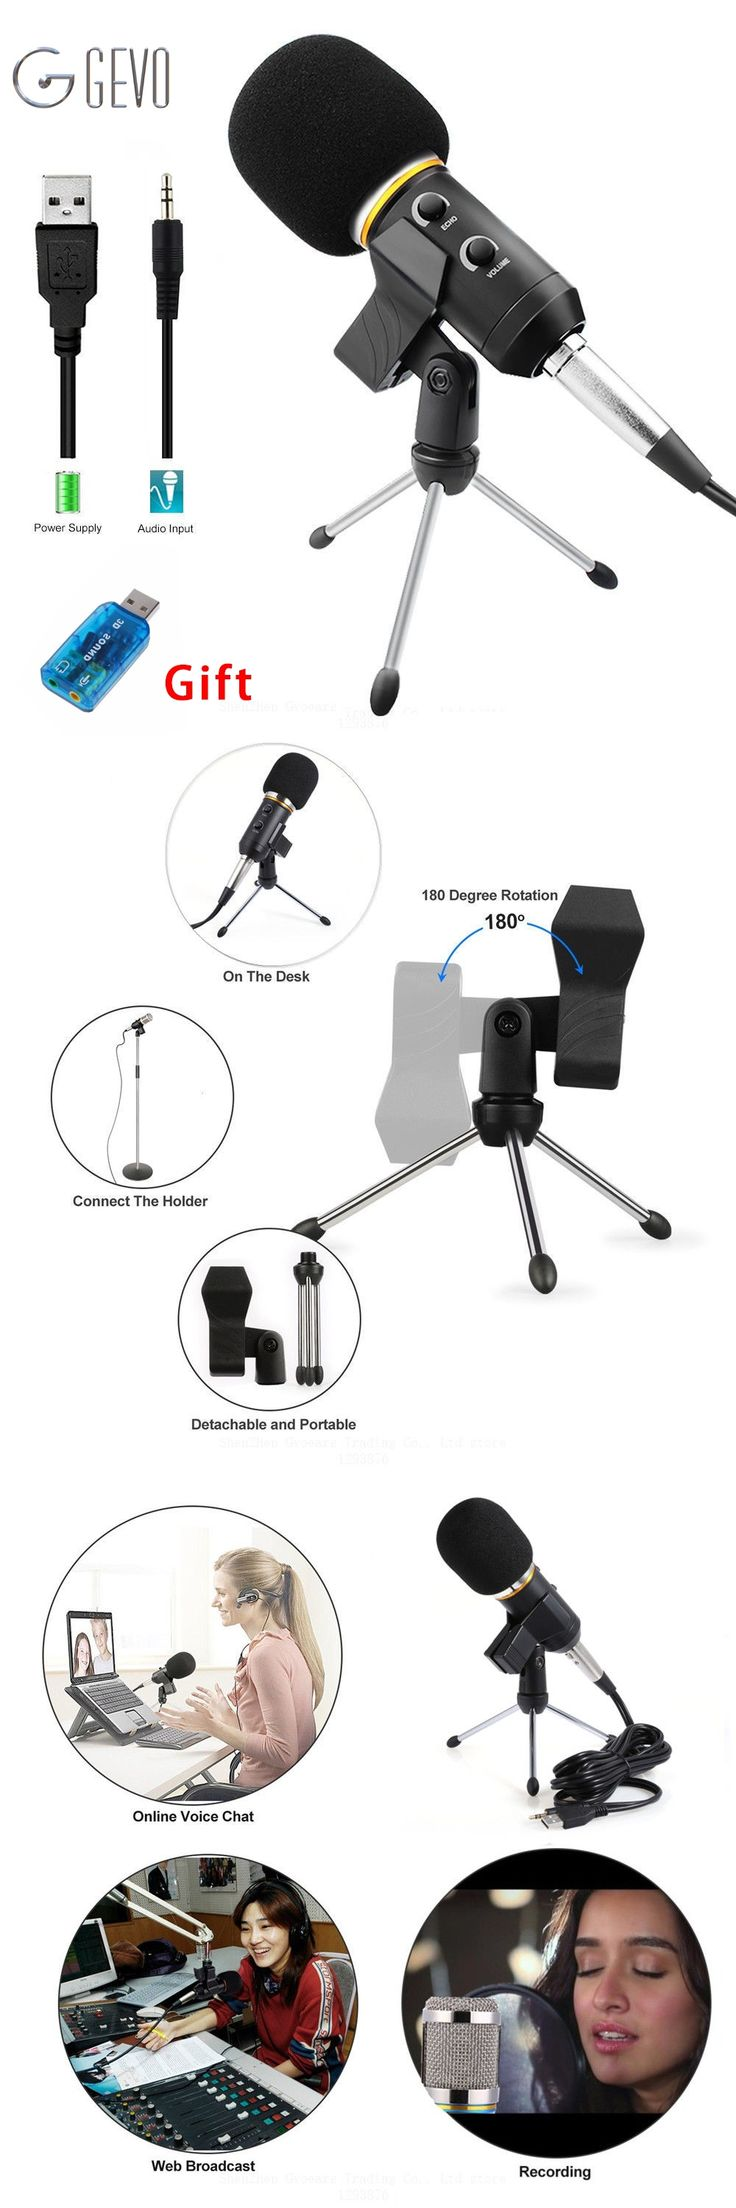 MK-F200FL Professional Microphone Wired Recording USB Condenser Microphones With System For Computer Karaoke Mikrofon Microfone